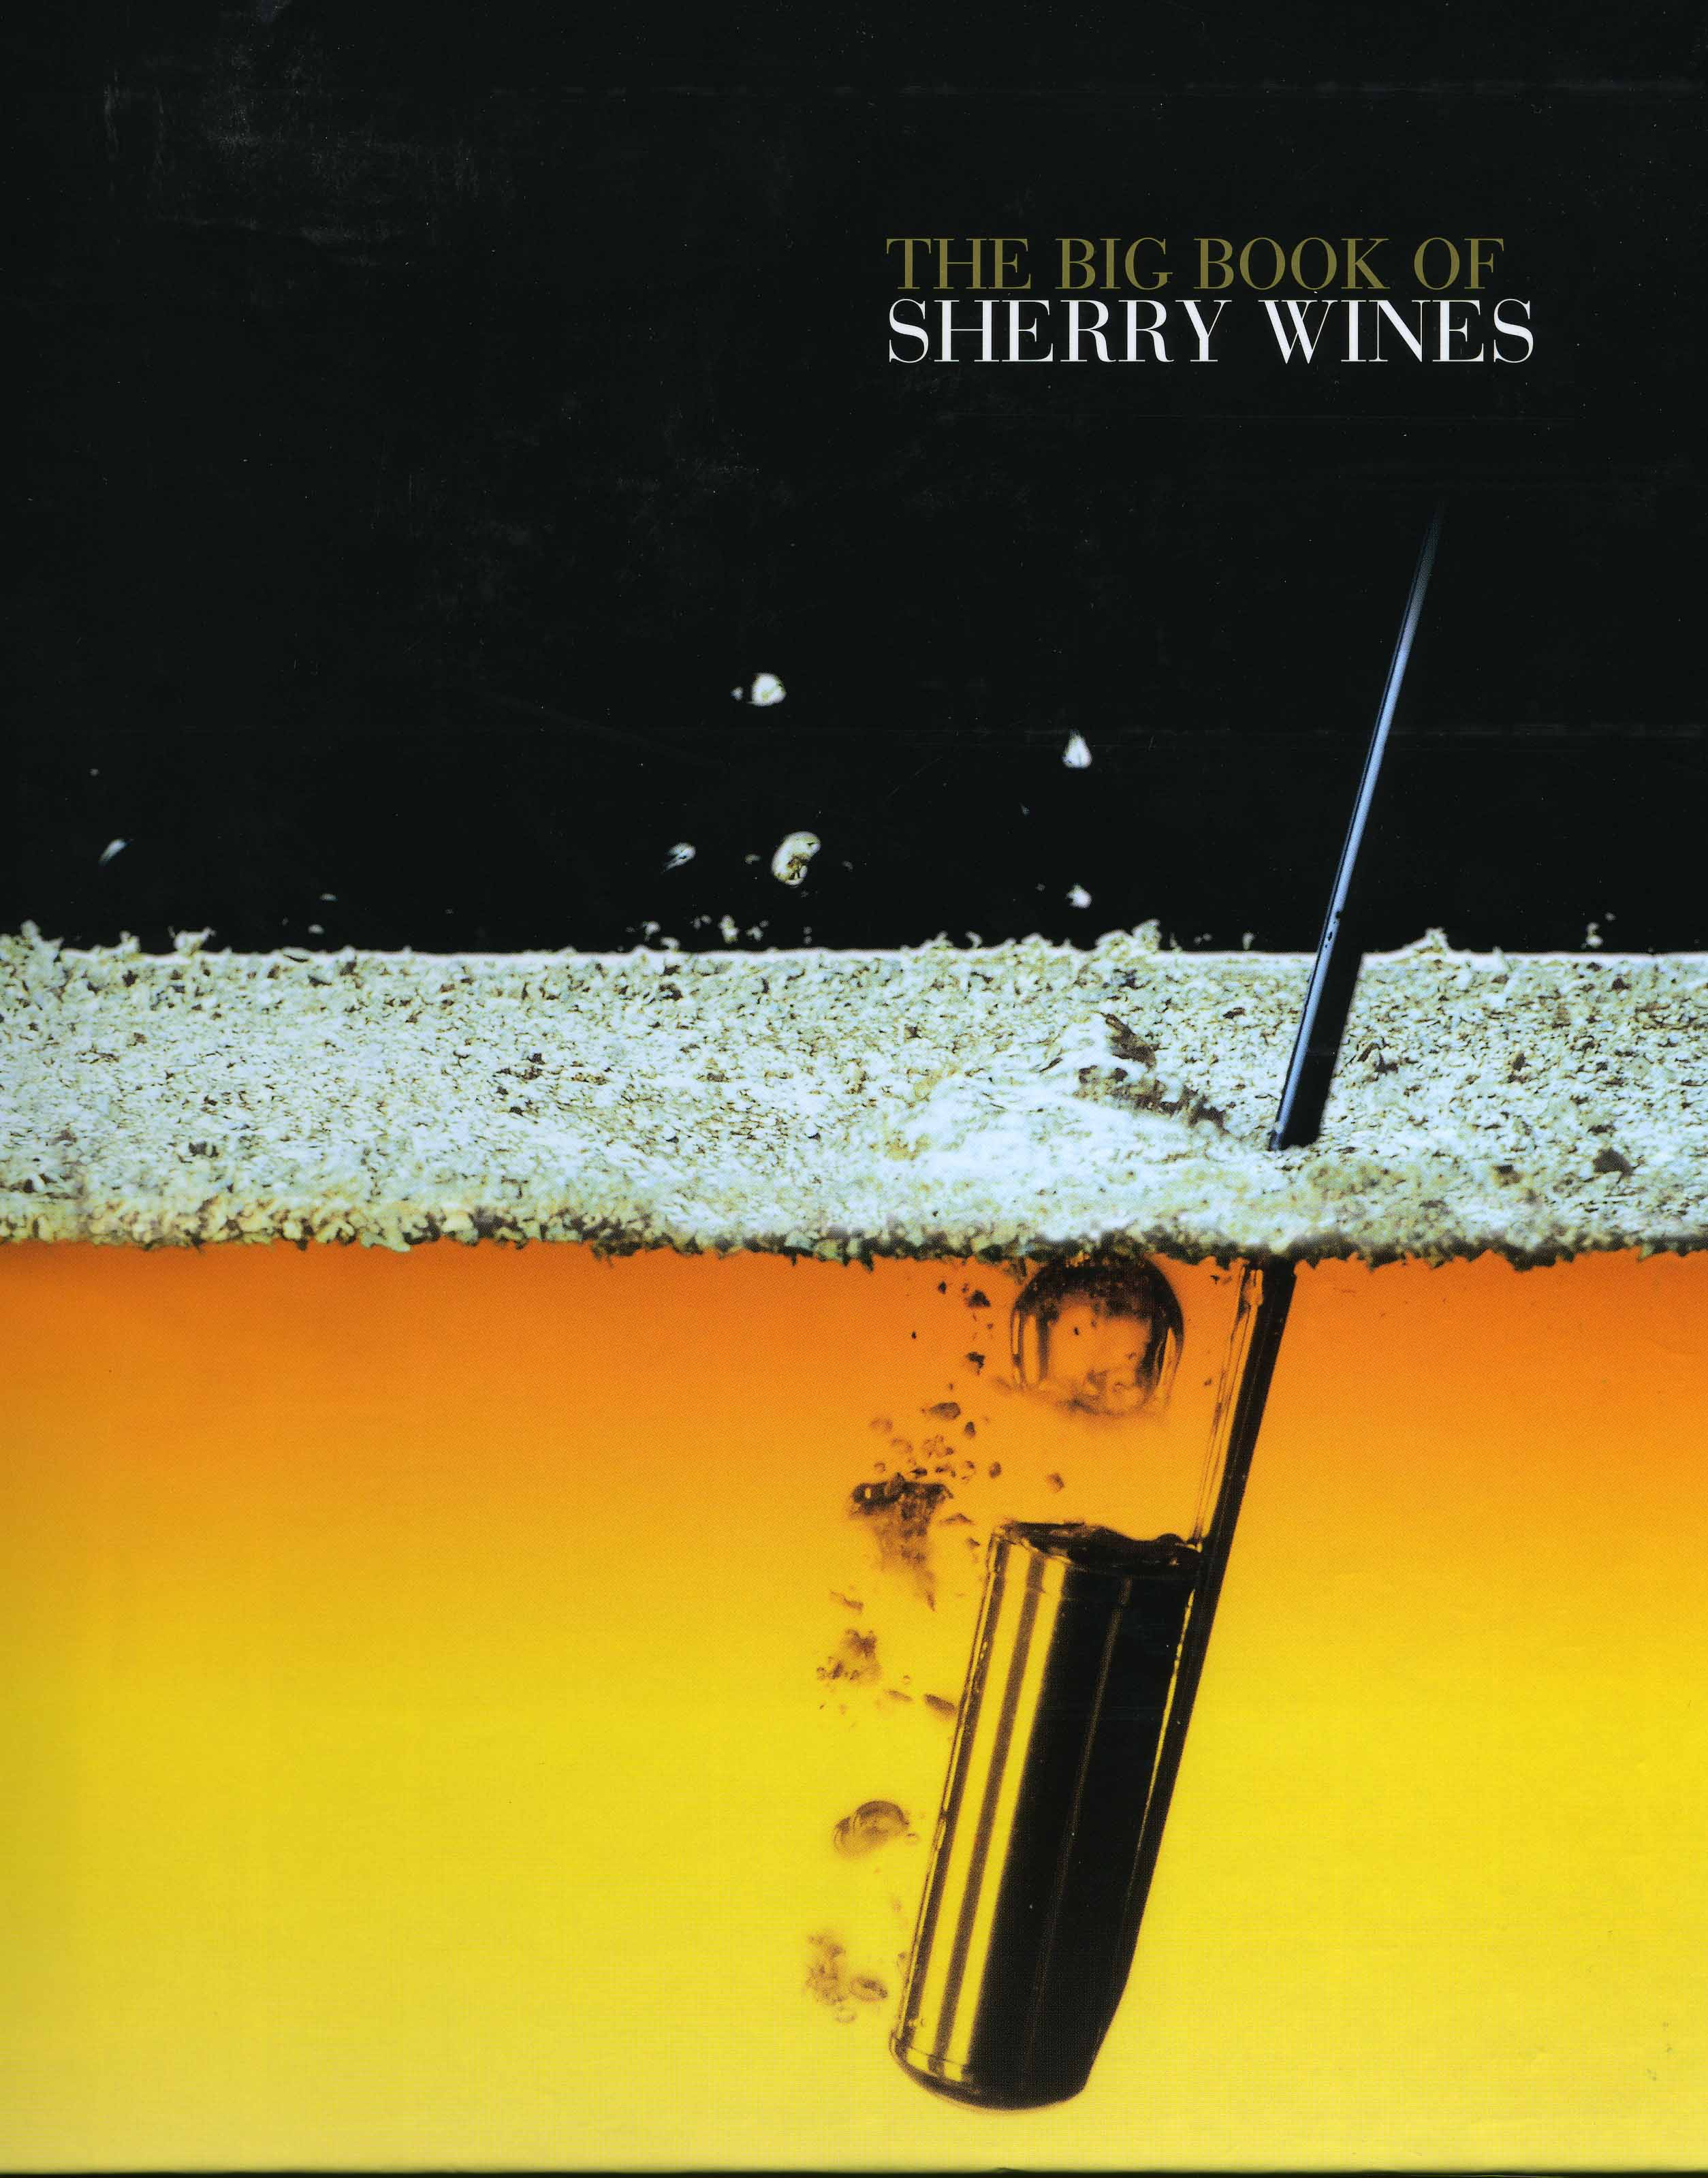 Big Book of Sherry Wines - Cesar Saldaña